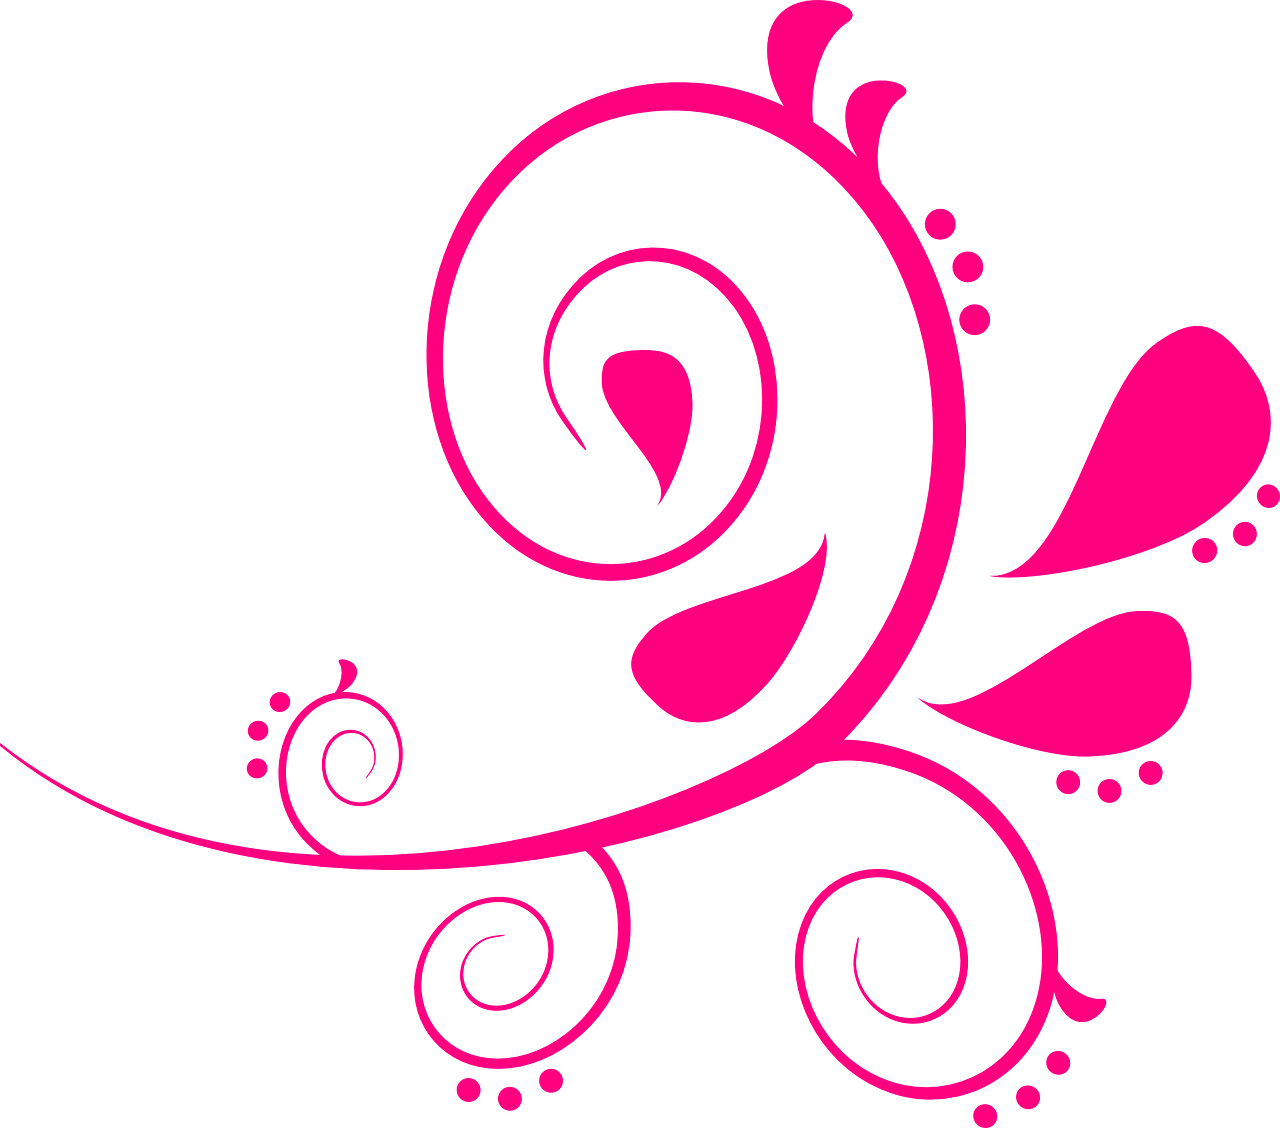 paisley swirls pink free photo